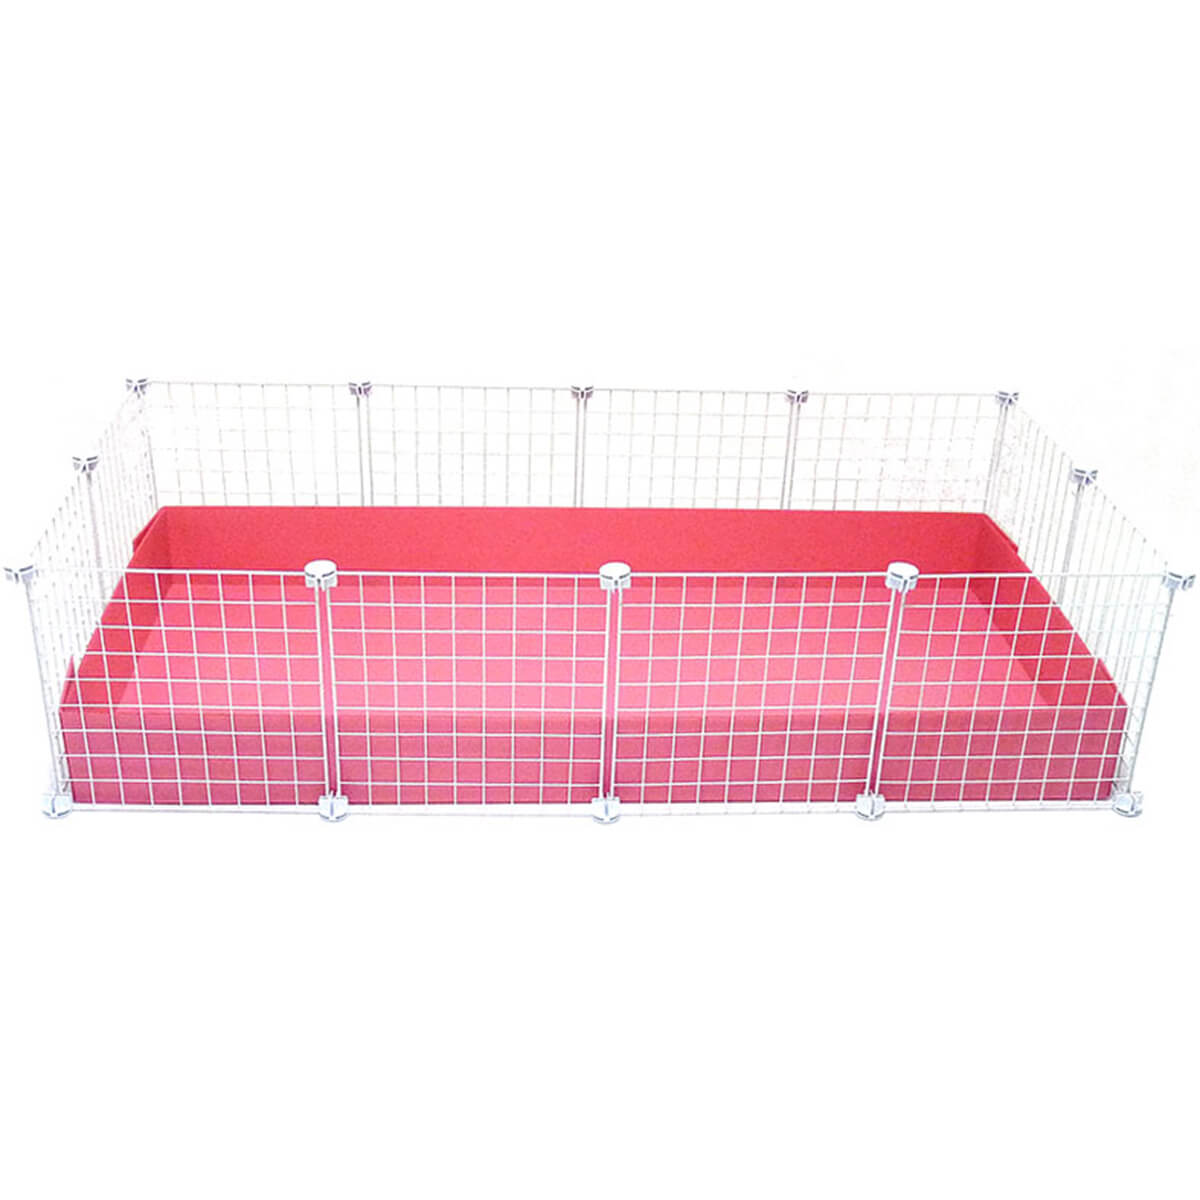 Large 2x4 grids cage clearance cages c c cages for for Guinea pig and cage for sale